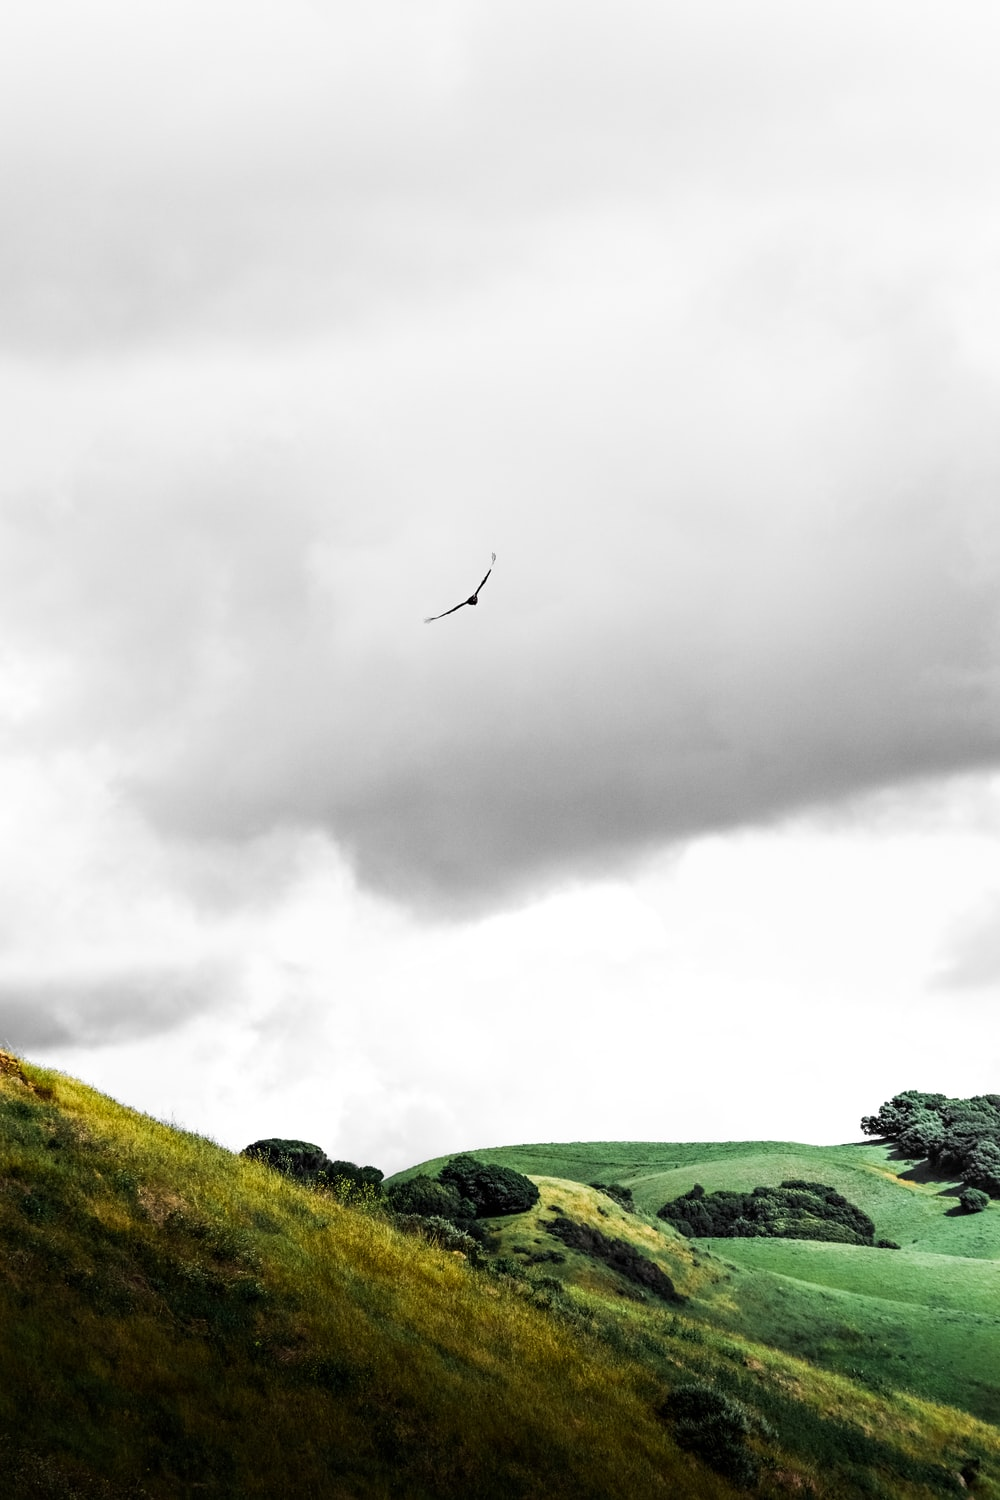 bird flying over green grass field under cloudy sky during daytime